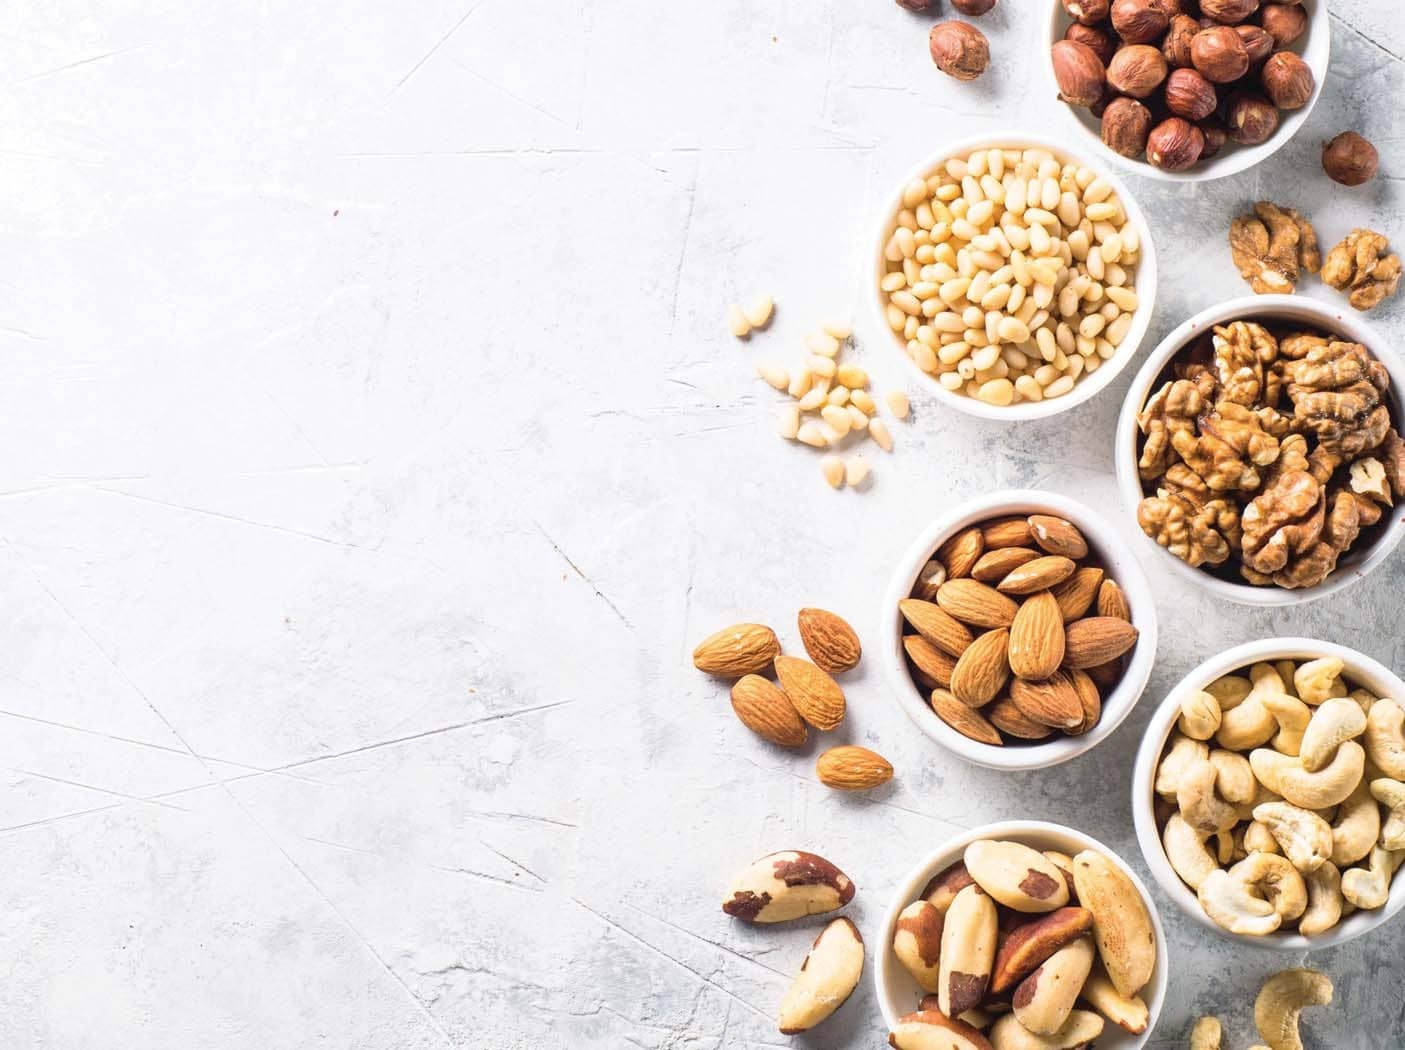 Are There Benefits to Going Nuts with Your Diet?